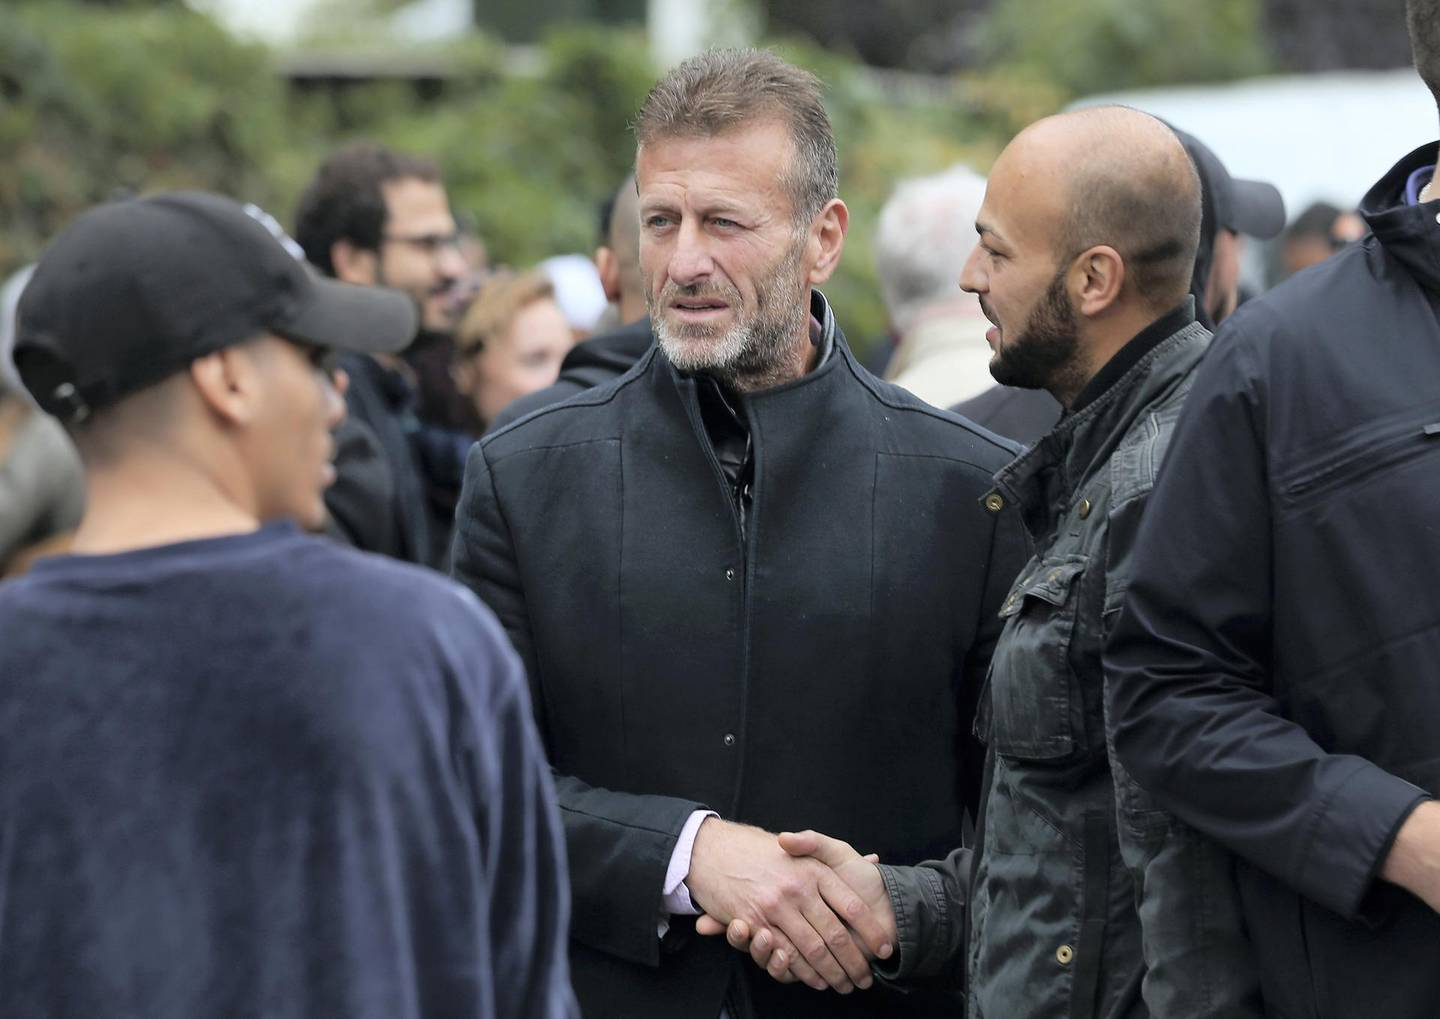 BERLIN, GERMANY - SEPTEMBER 13:  Issa Remmo, head of the Lebanese Arab Remmo family that was investigated by police for money laundering, departs after attending the funeral of Nidal R. at the New 12 Apostles cemetery on September 13, 2018 in Berlin, Germany. Nidal R., 36, a multiple felon, was gunned down by assailants who managed to flee the scene at a public park last Sunday. Berlin has a number of Arab, Kurdish and Turkish clans deeply organized in organized crime.  (Photo by Sean Gallup/Getty Images)